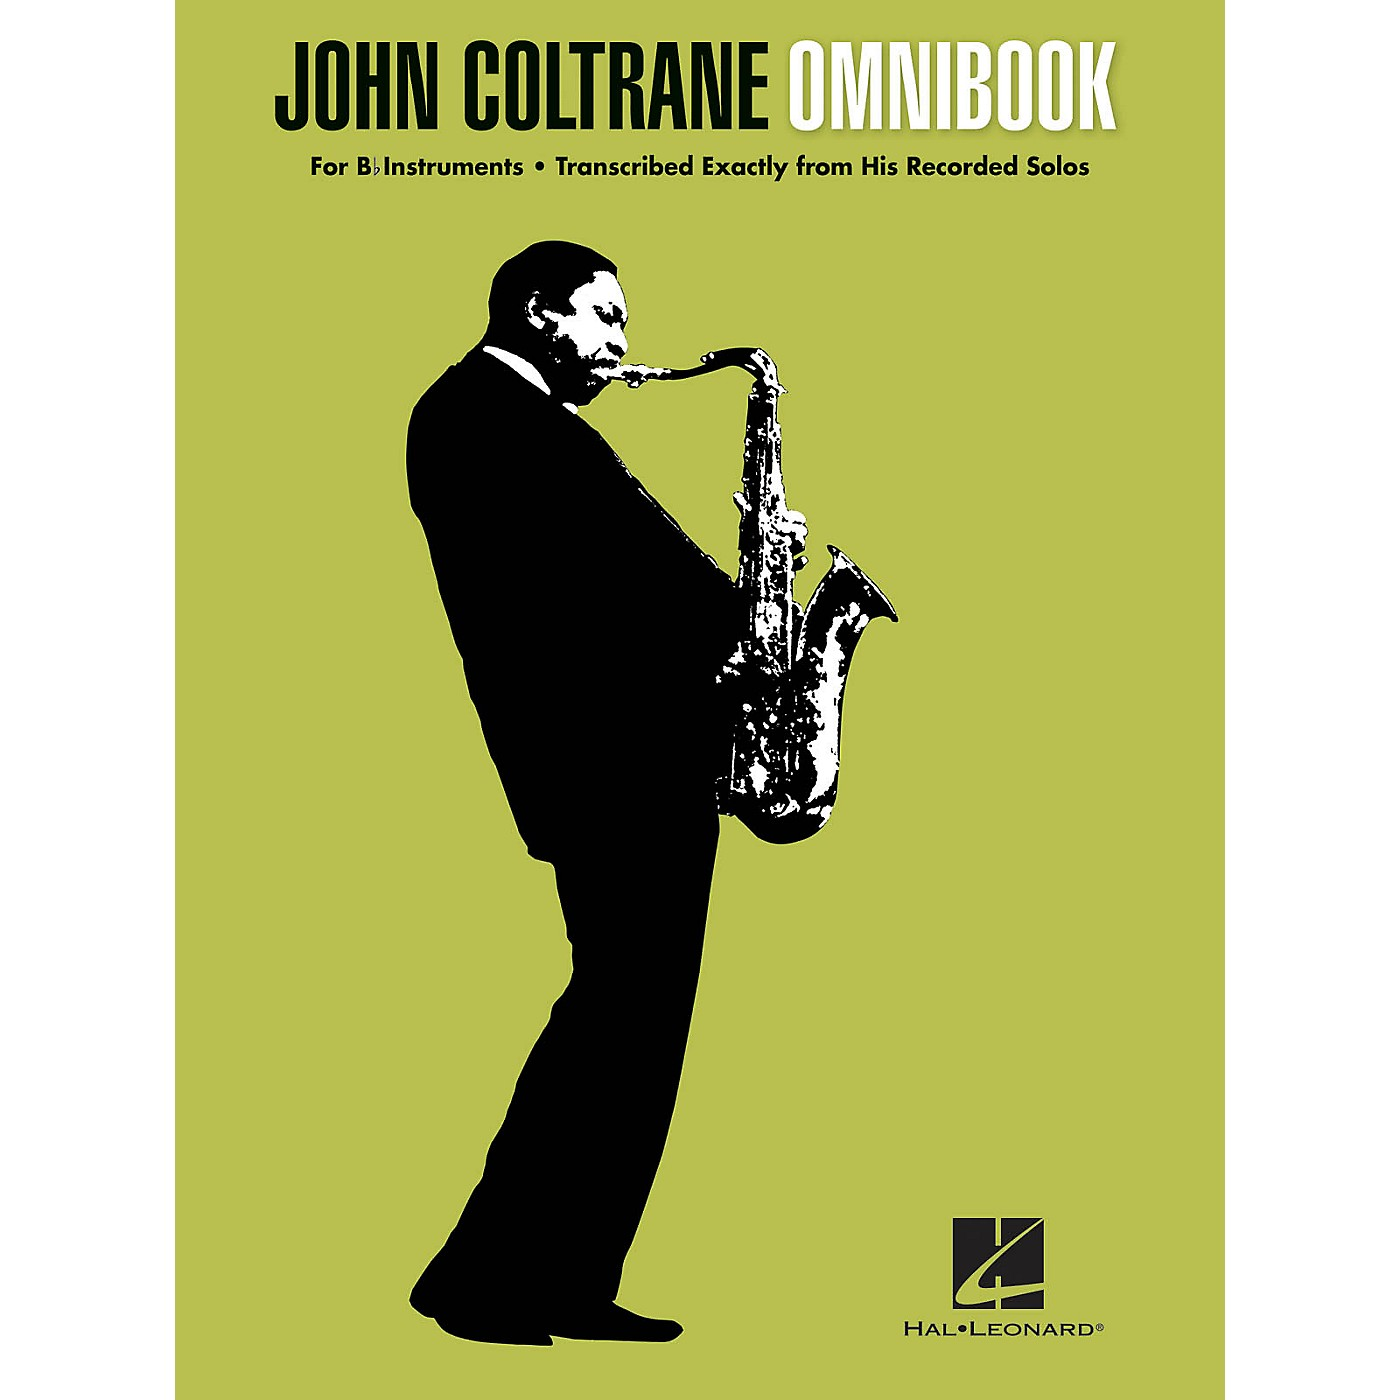 Hal Leonard John Coltrane - Omnibook (For B-flat Instruments) Jazz Transcriptions Series Softcover by John Coltrane thumbnail